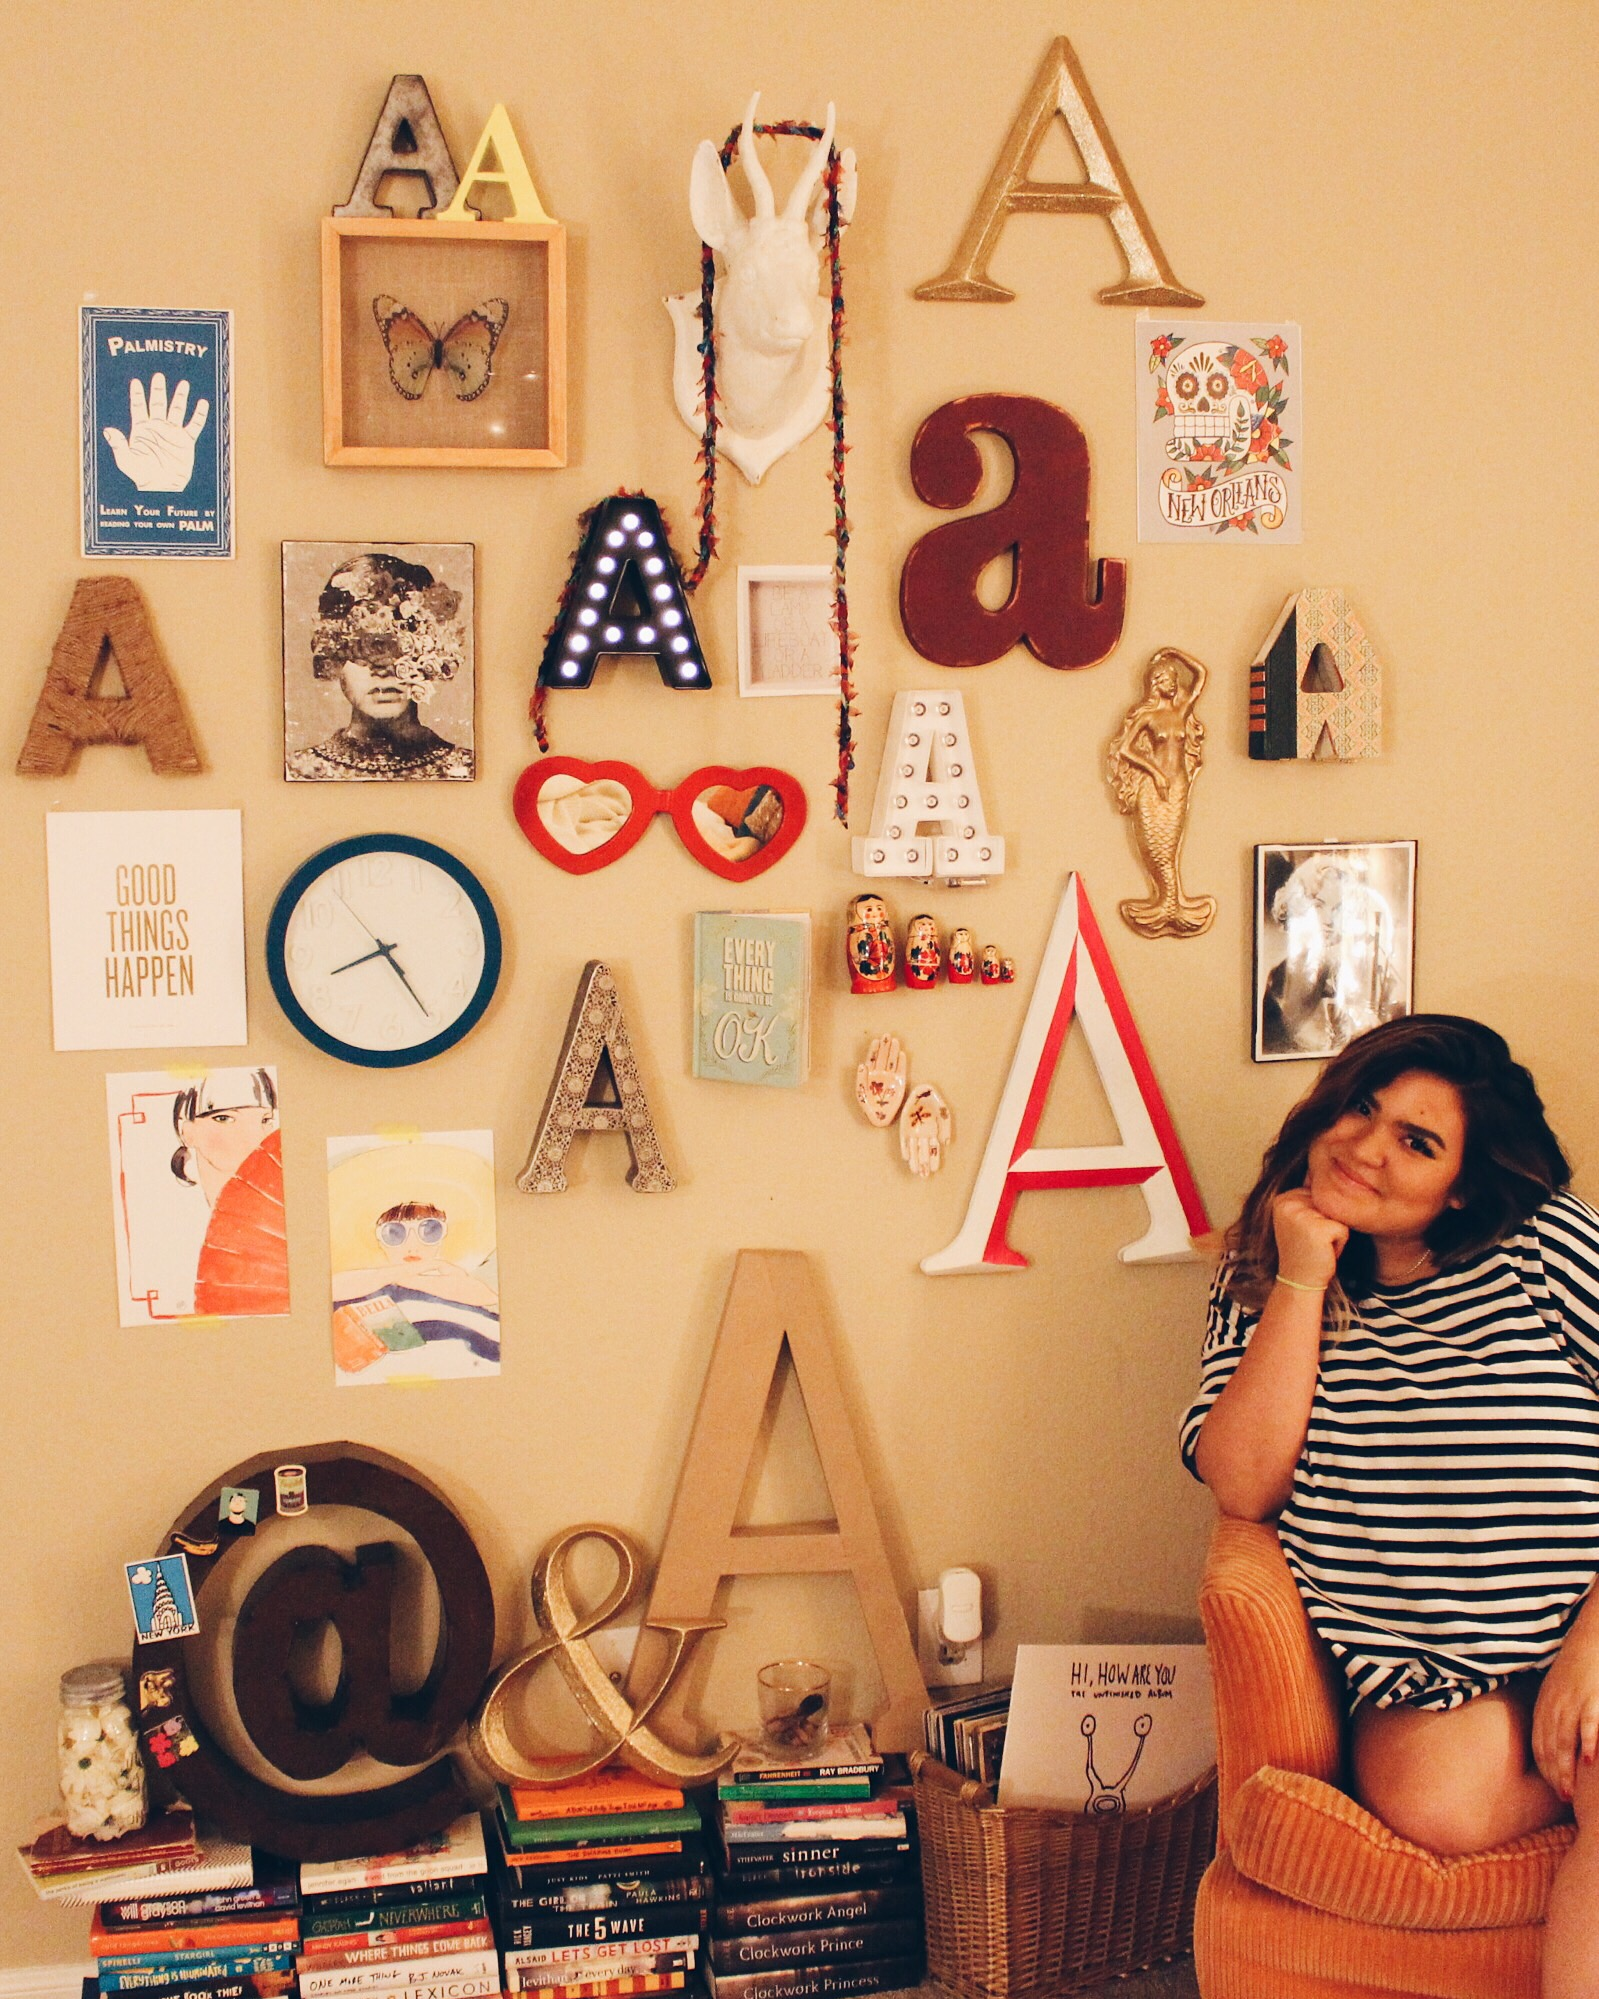 A is for Avery - I graduated from The University of Texas at Austin with a B.S. in Advertising and completed the Texas Creative sequence. I'm a copywriter spending my days refreshing Twitter and thinking in 280 characters or less.